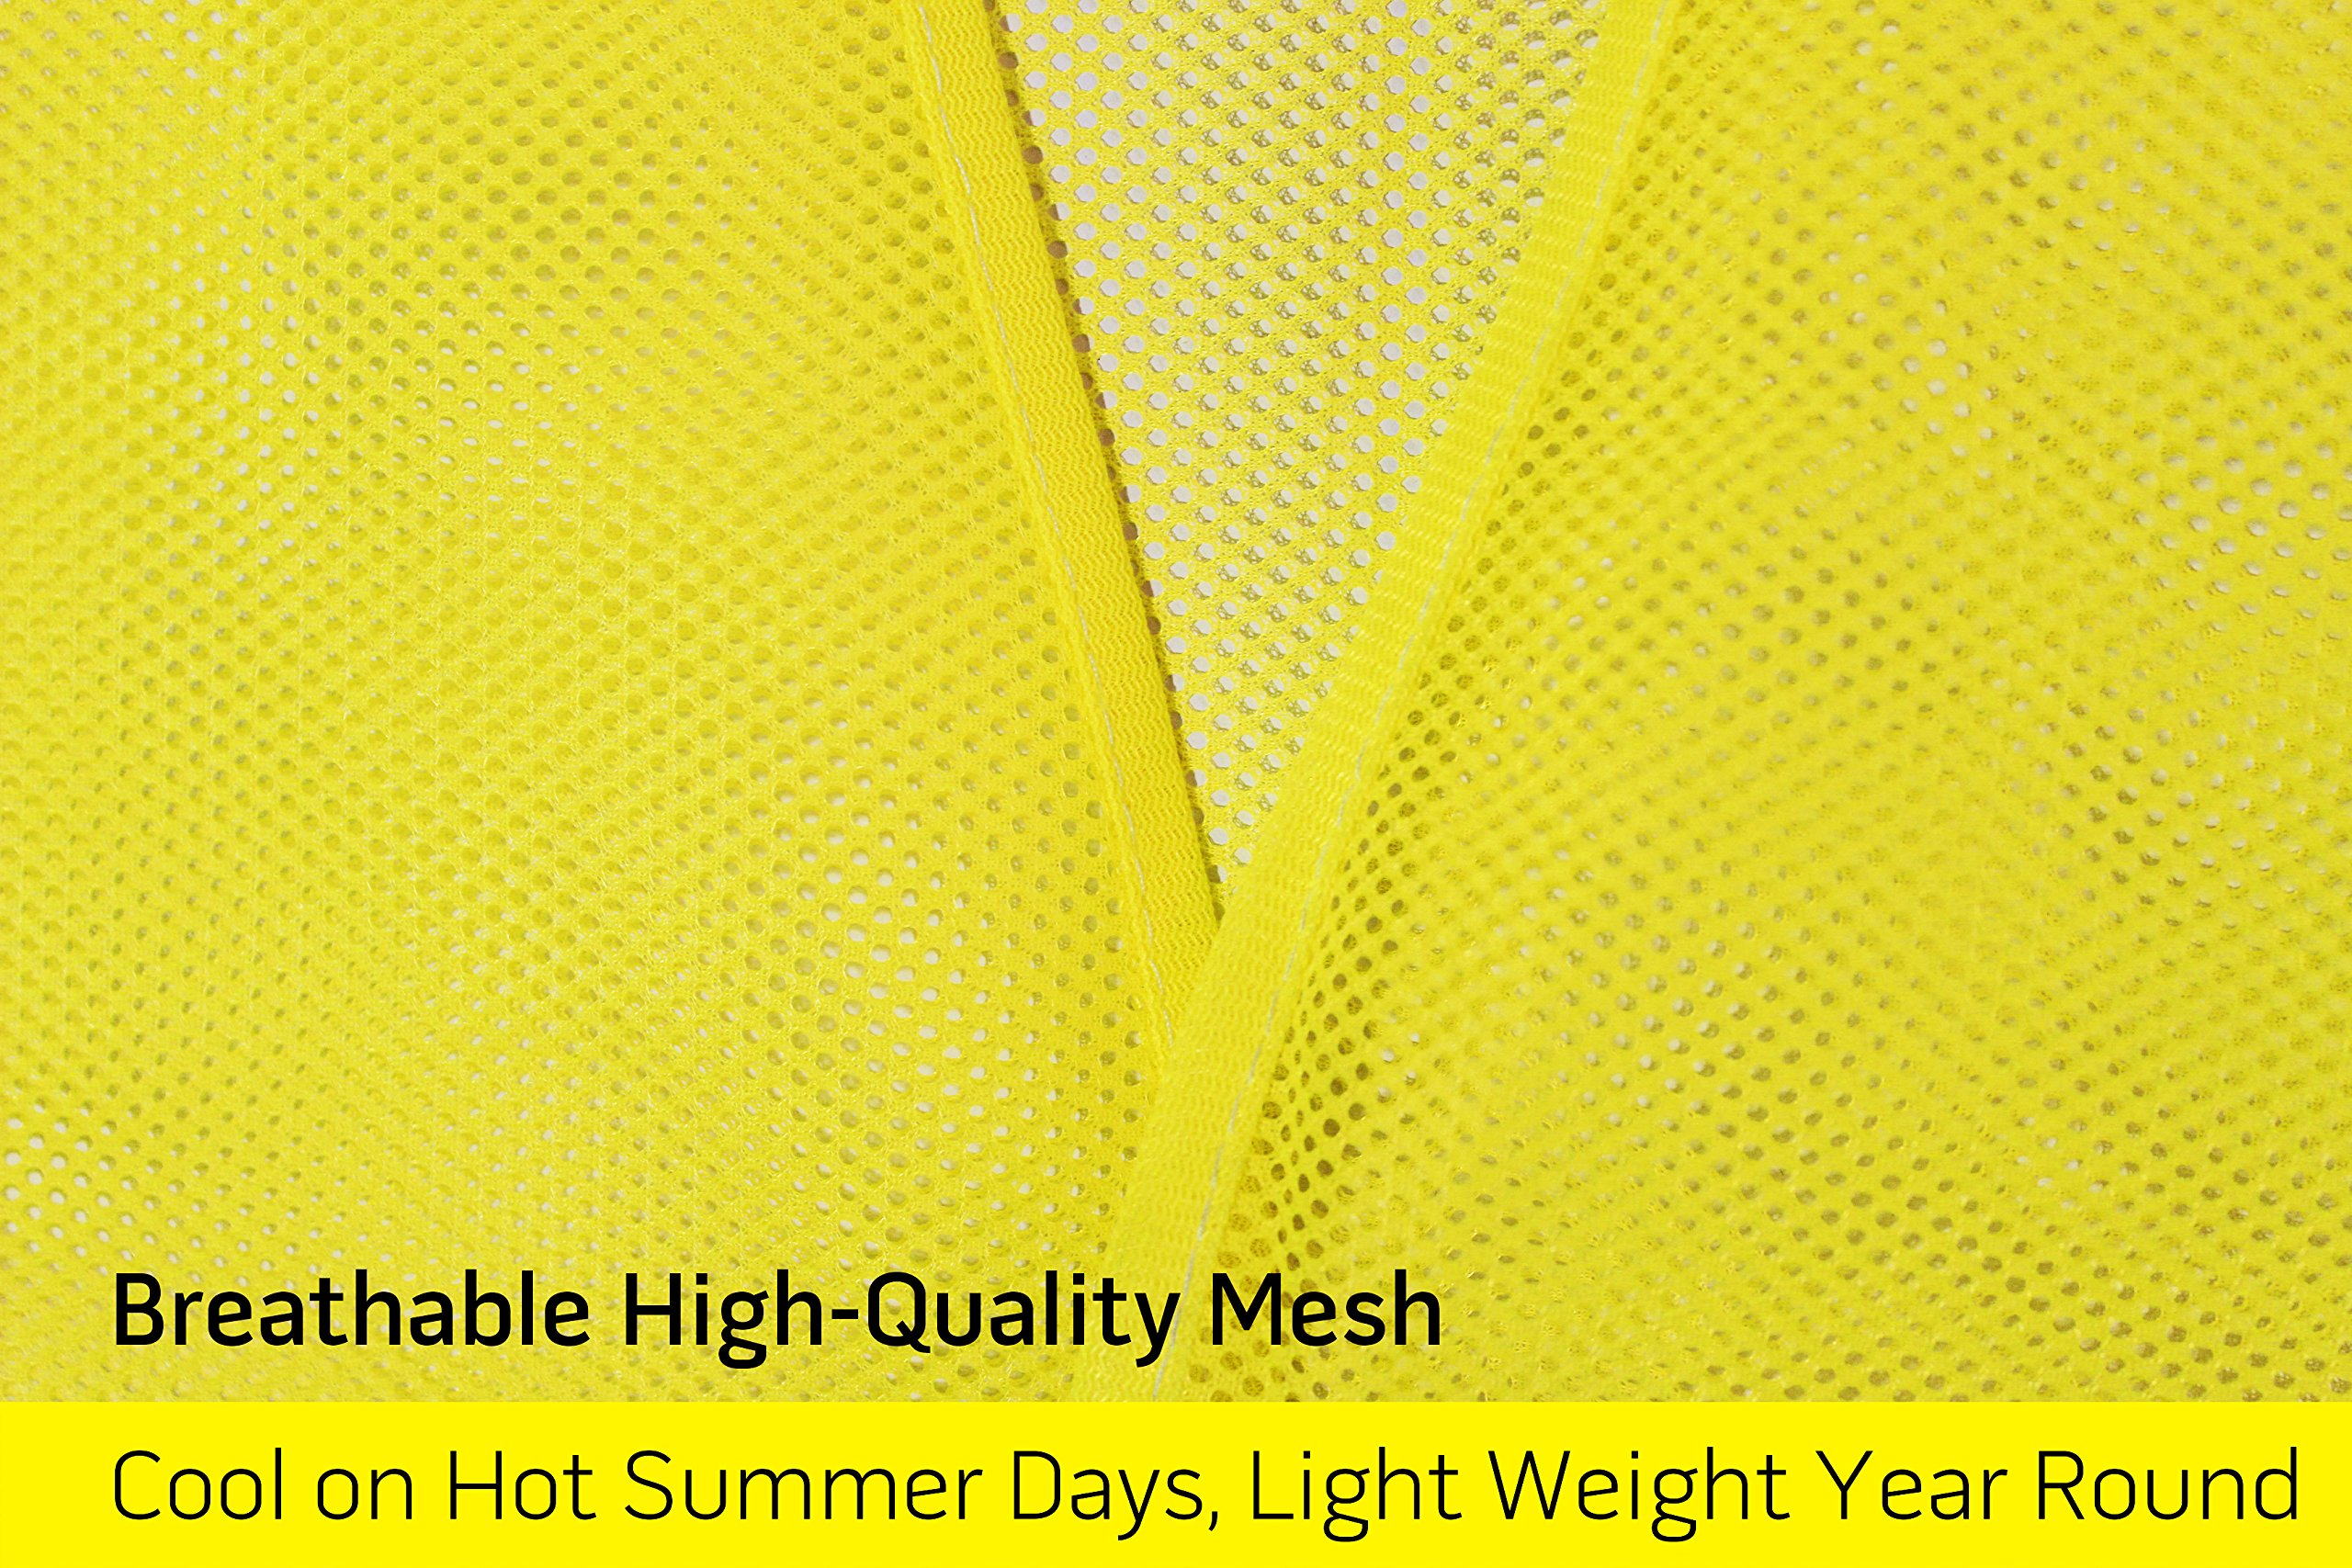 PeerBasics, 10 Pack, Yellow Reflective Safety Vest, Silver Strip, Bright Breathable Neon Yellow (Mesh, 10) by PeerBasics (Image #4)